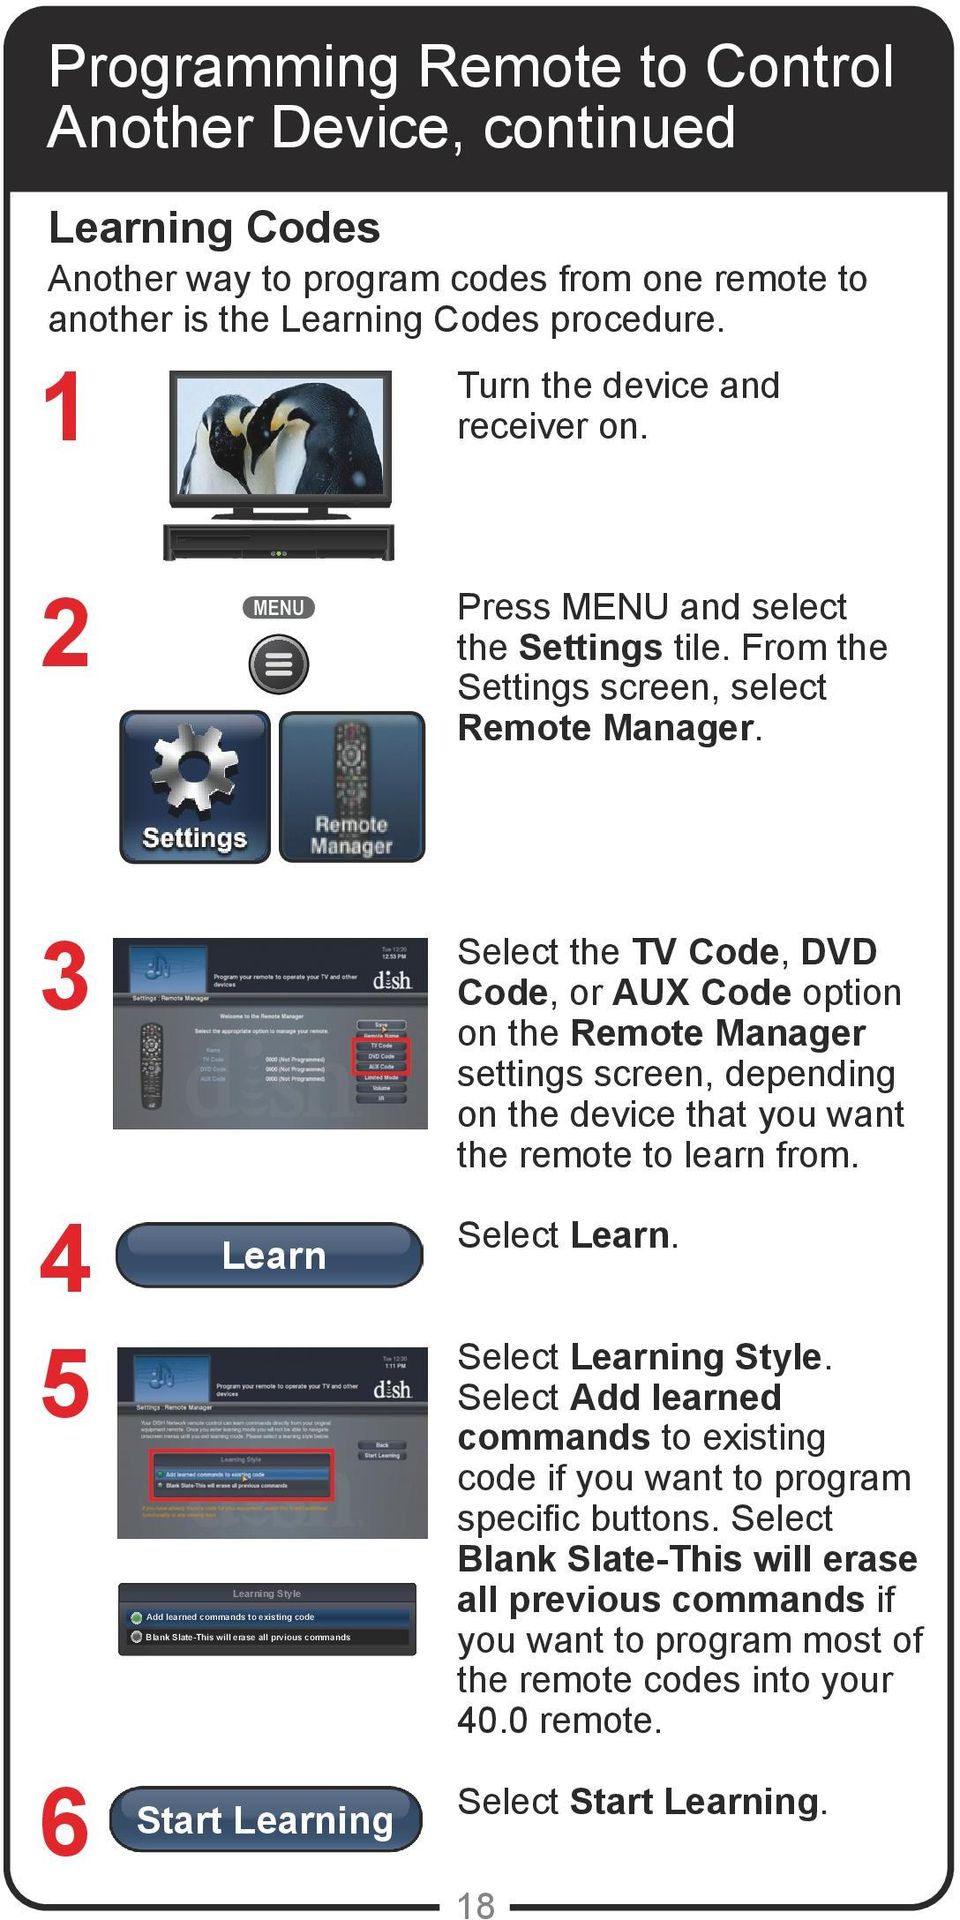 3 4 5 6 Learn Learning Style Add learned commands to existing code Blank Slate-This will erase all prvious commands Start Learning Select the TV Code, DVD Code, or AUX Code option on the Remote